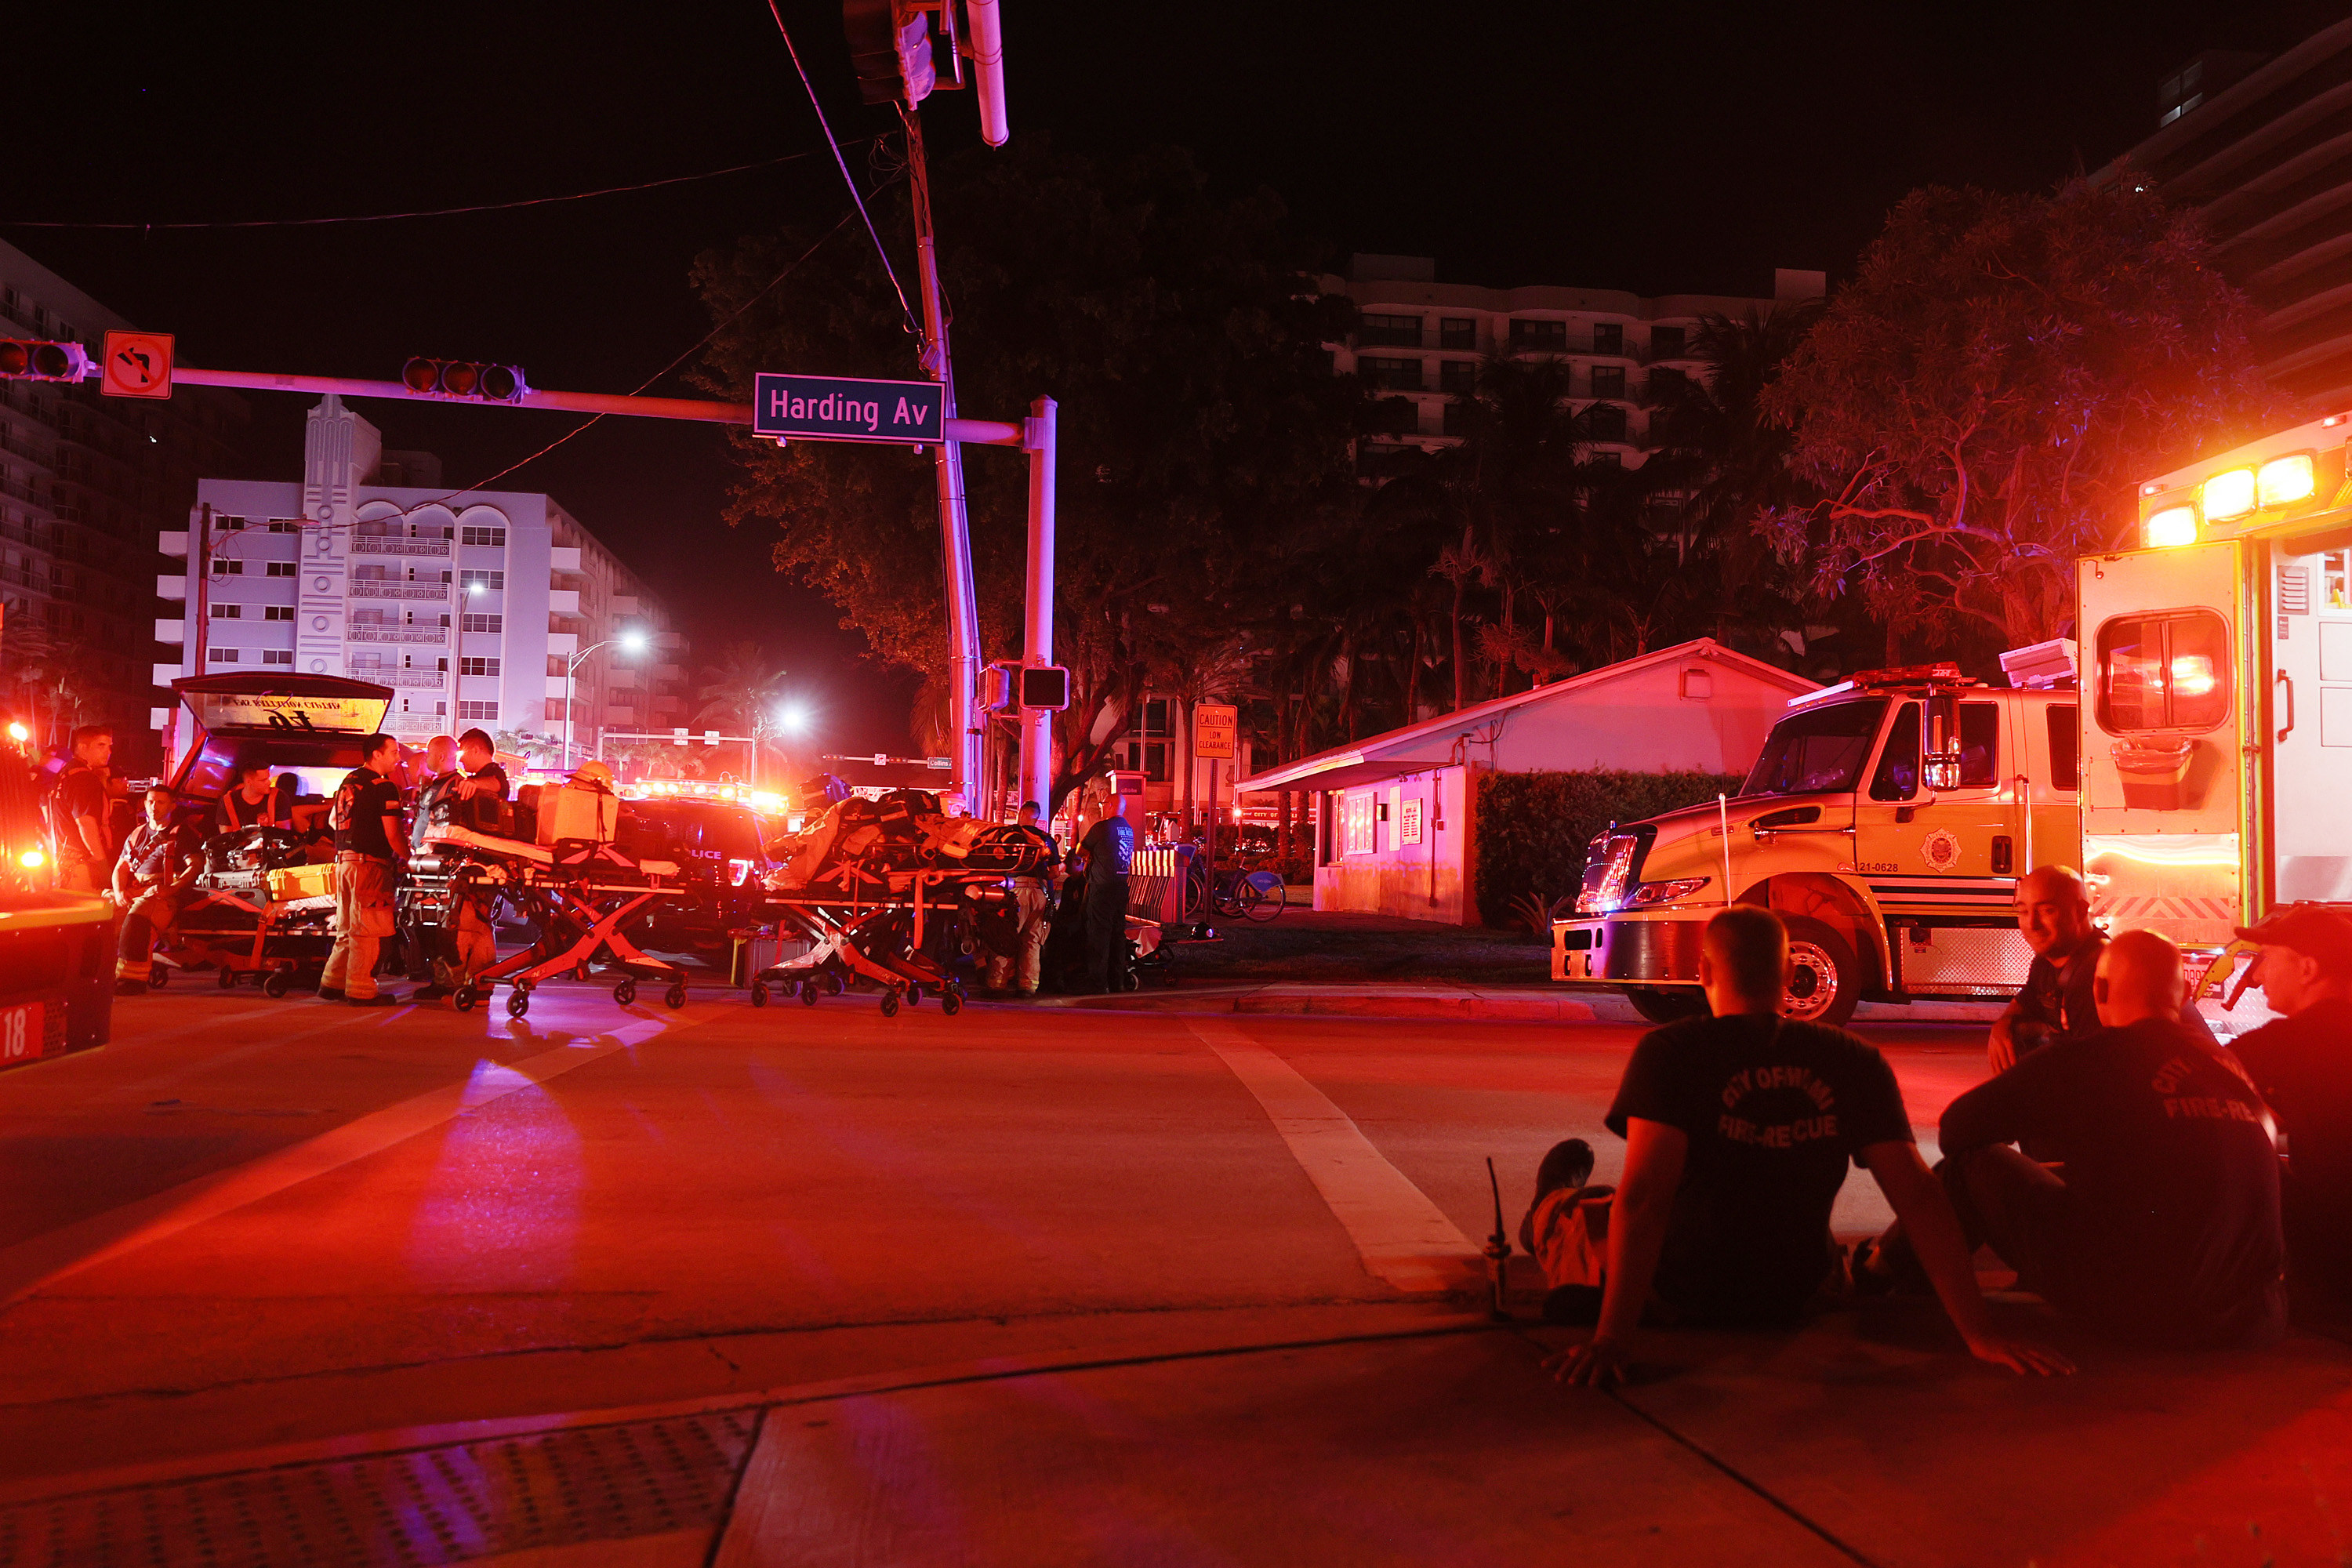 Rescue personnel sit on the sidewalk surrounded by emergency vehicles with red lights flashing